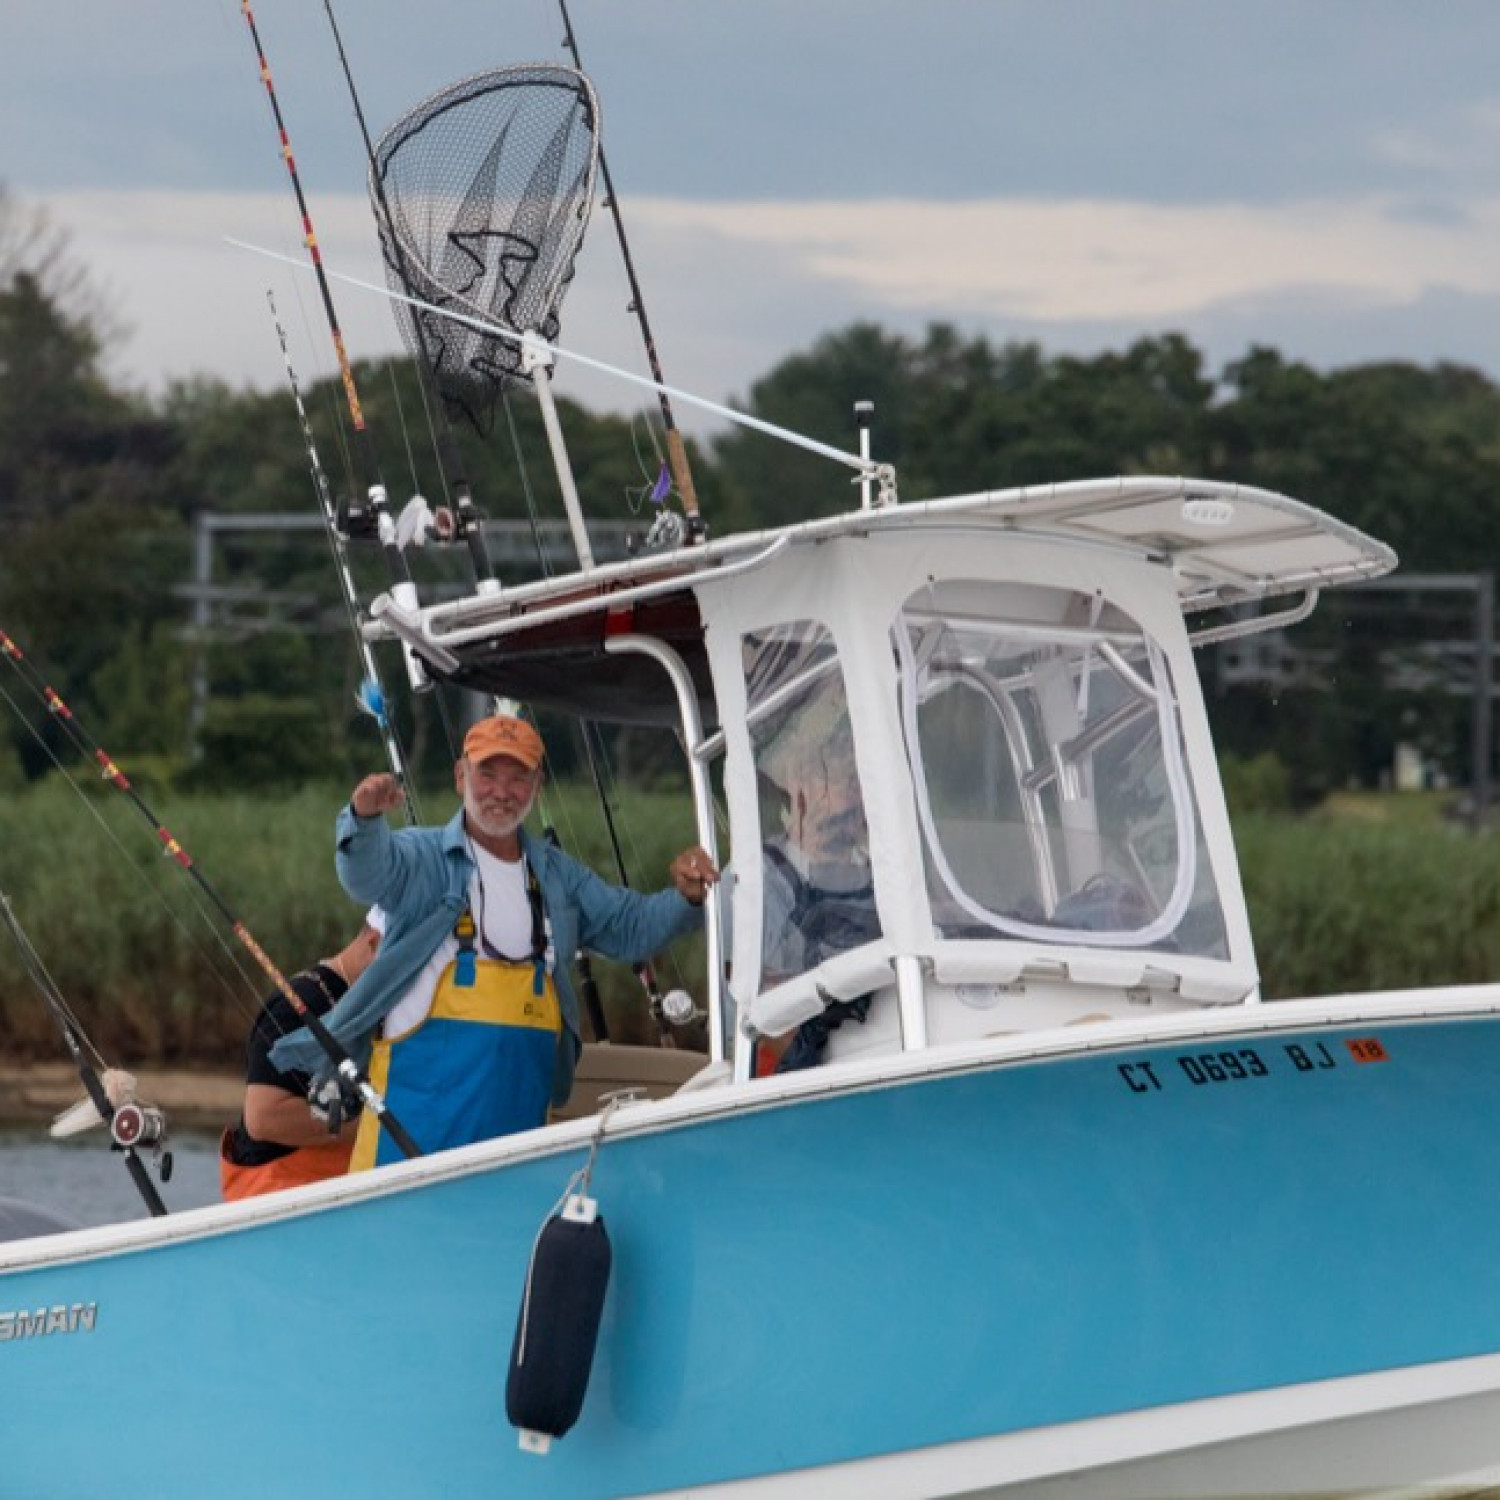 Title: Out for the win!!! - On board their Sportsman Open 232 Center Console - Location: East lyme ct. Participating in the Photo Contest #SportsmanNovember2017